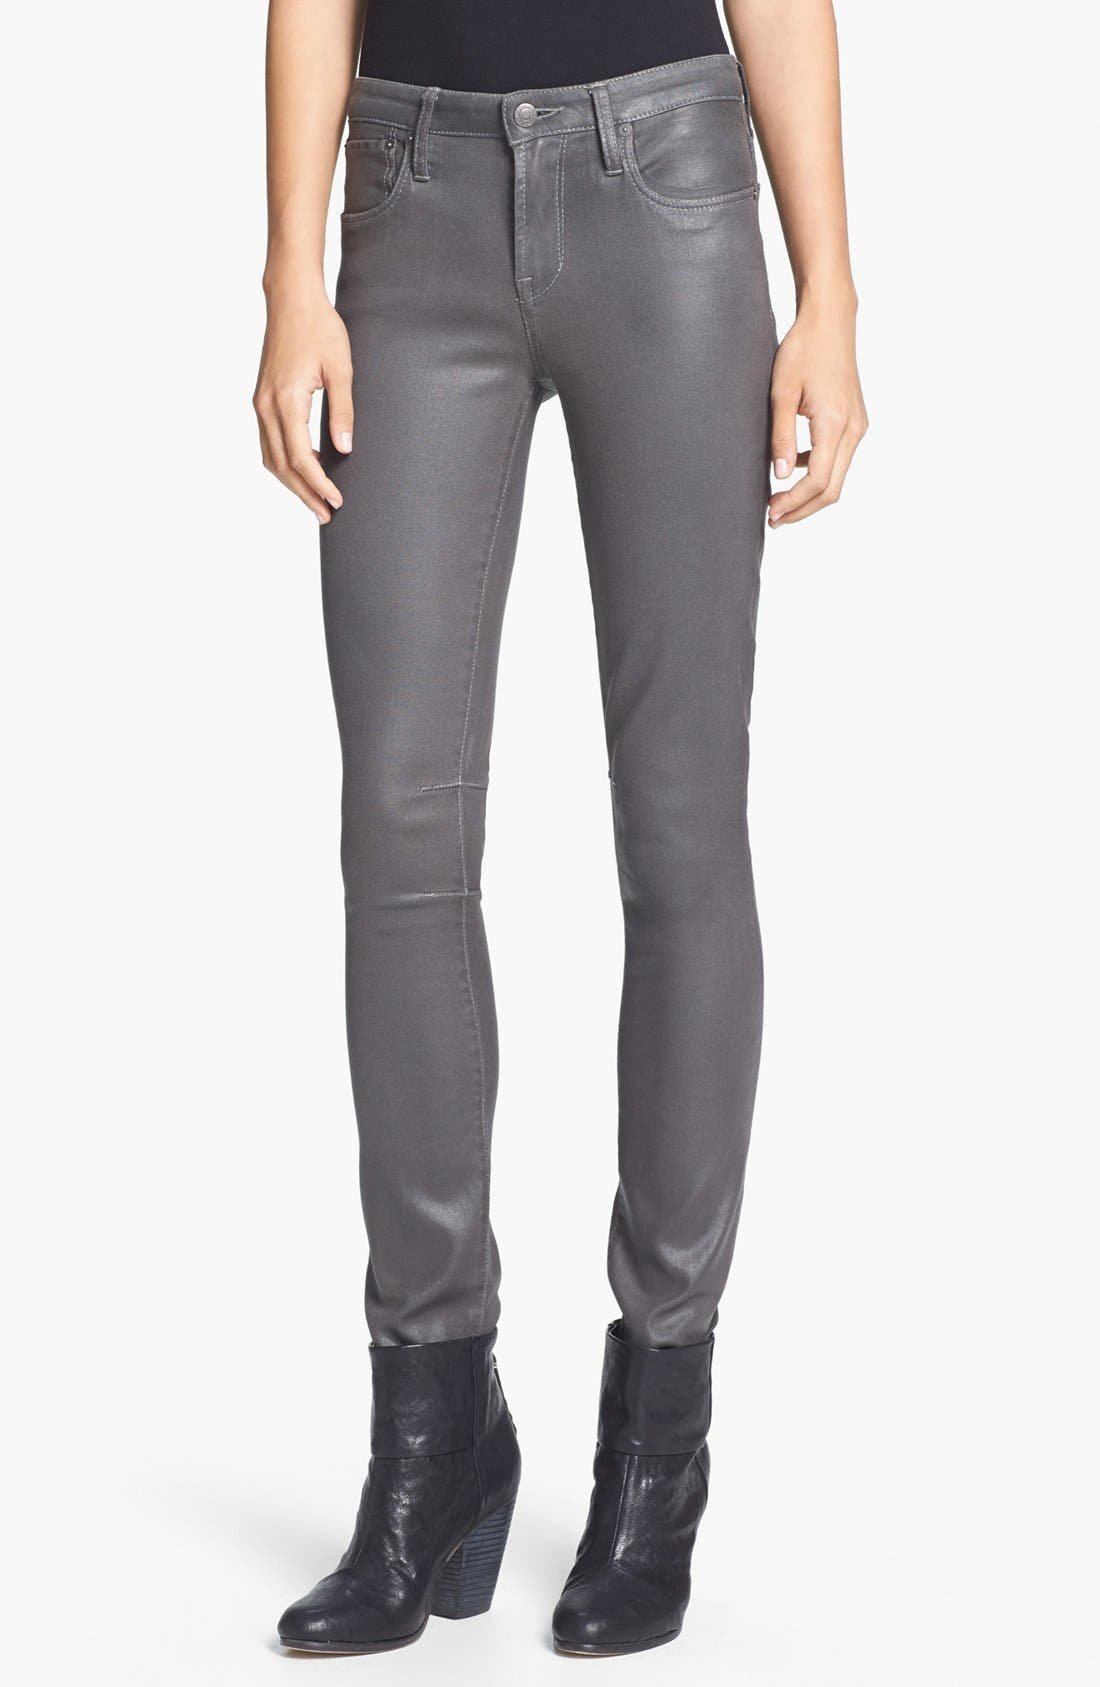 Main Image - HELMUT Helmut Lang 'High Gloss' Skinny Pants